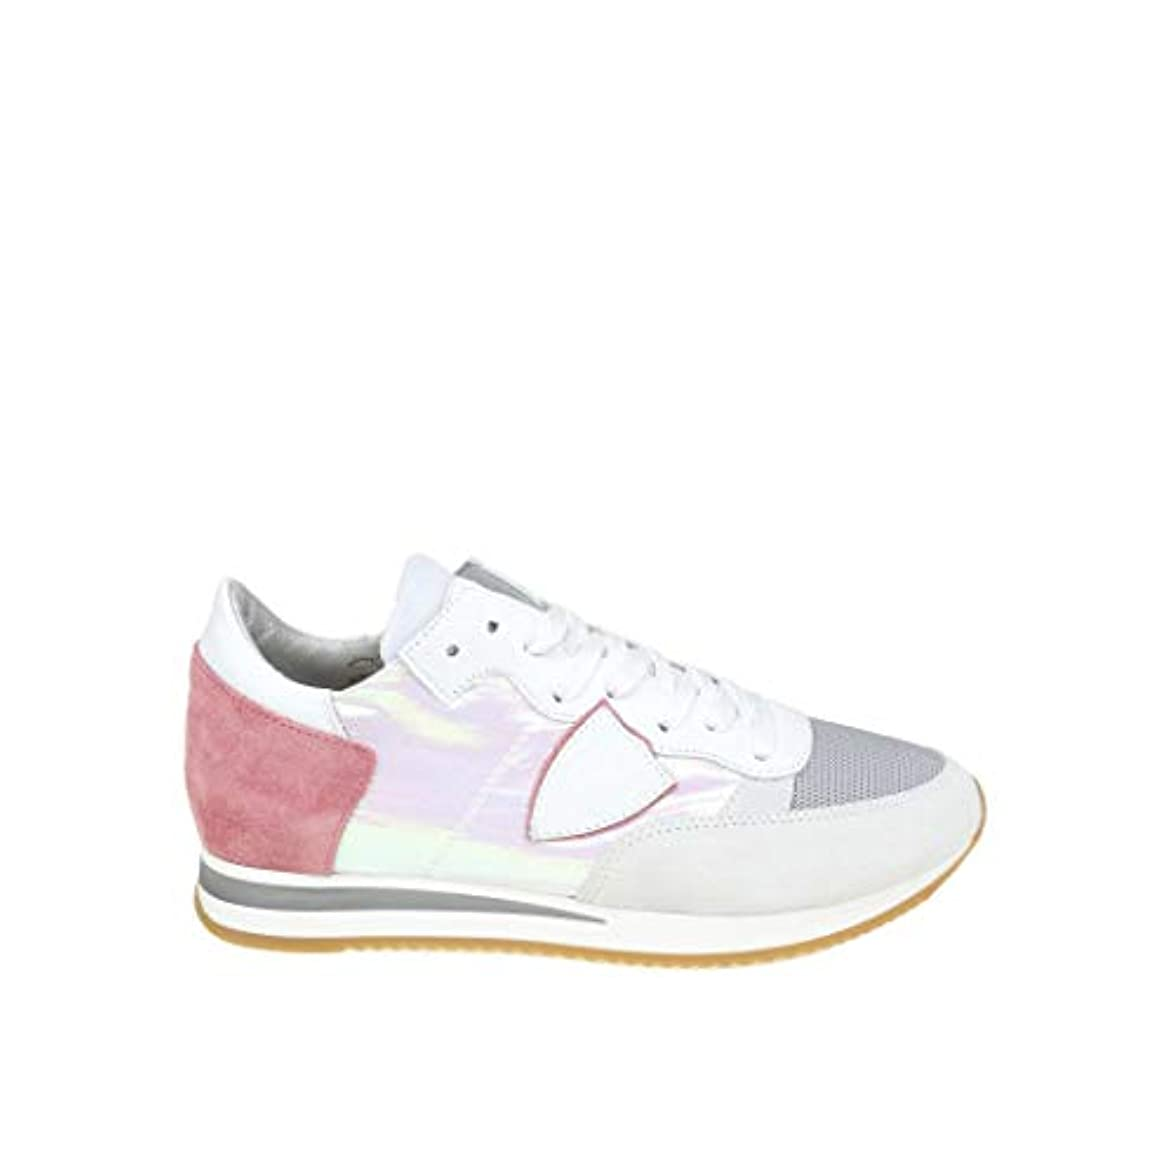 Philippe Model Sneakers Donna Trldwo07 Camoscio Rosa